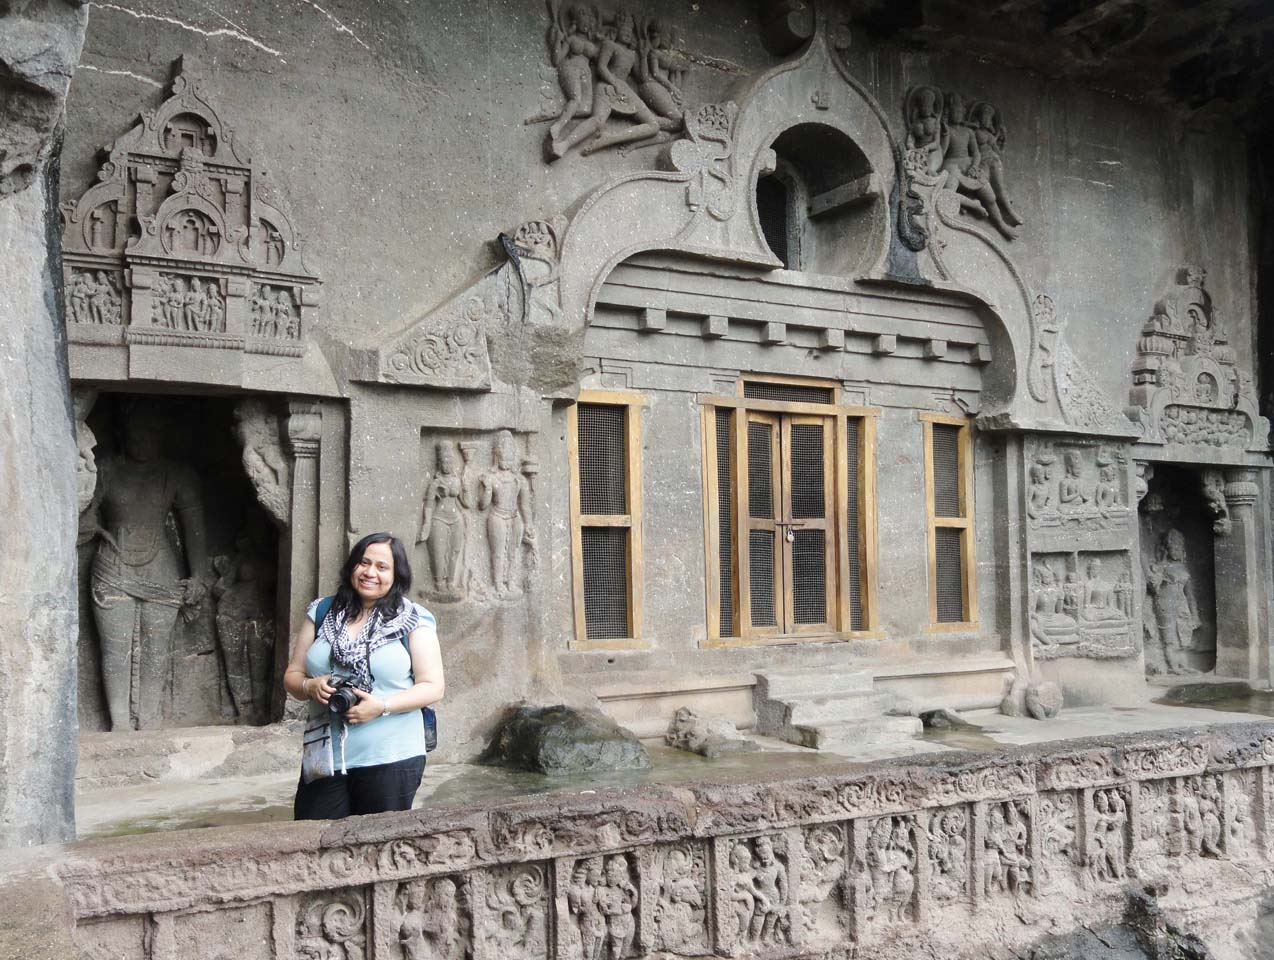 Me at Ellora caves